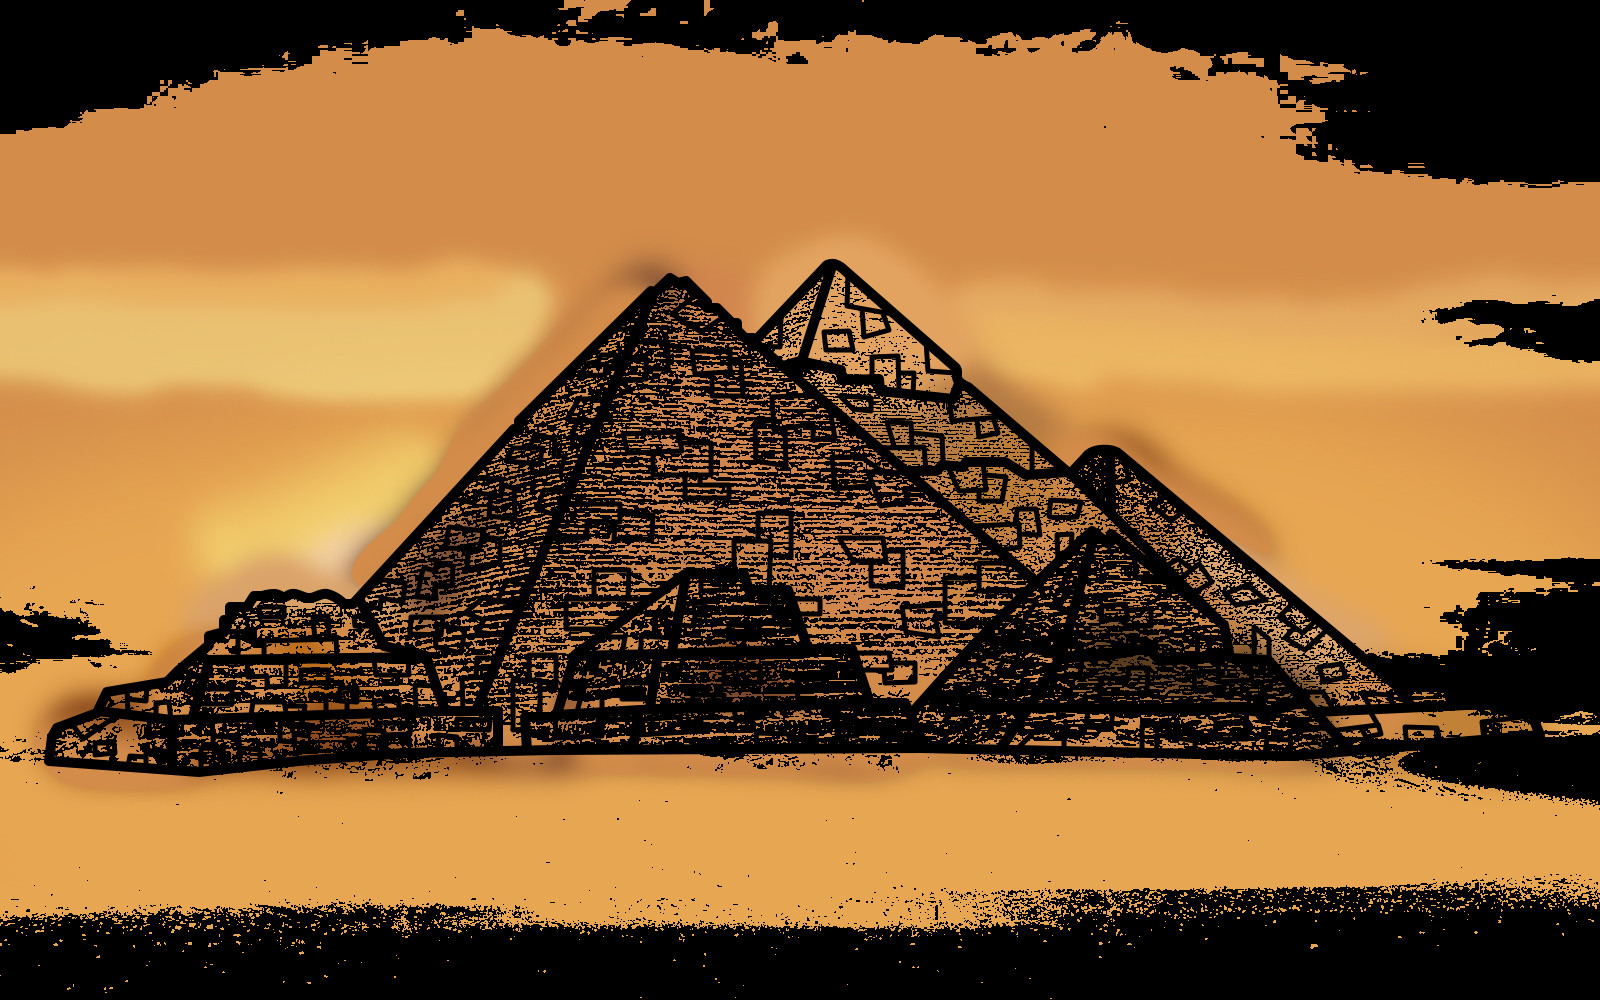 Rustic orcullo great pyramid of giza